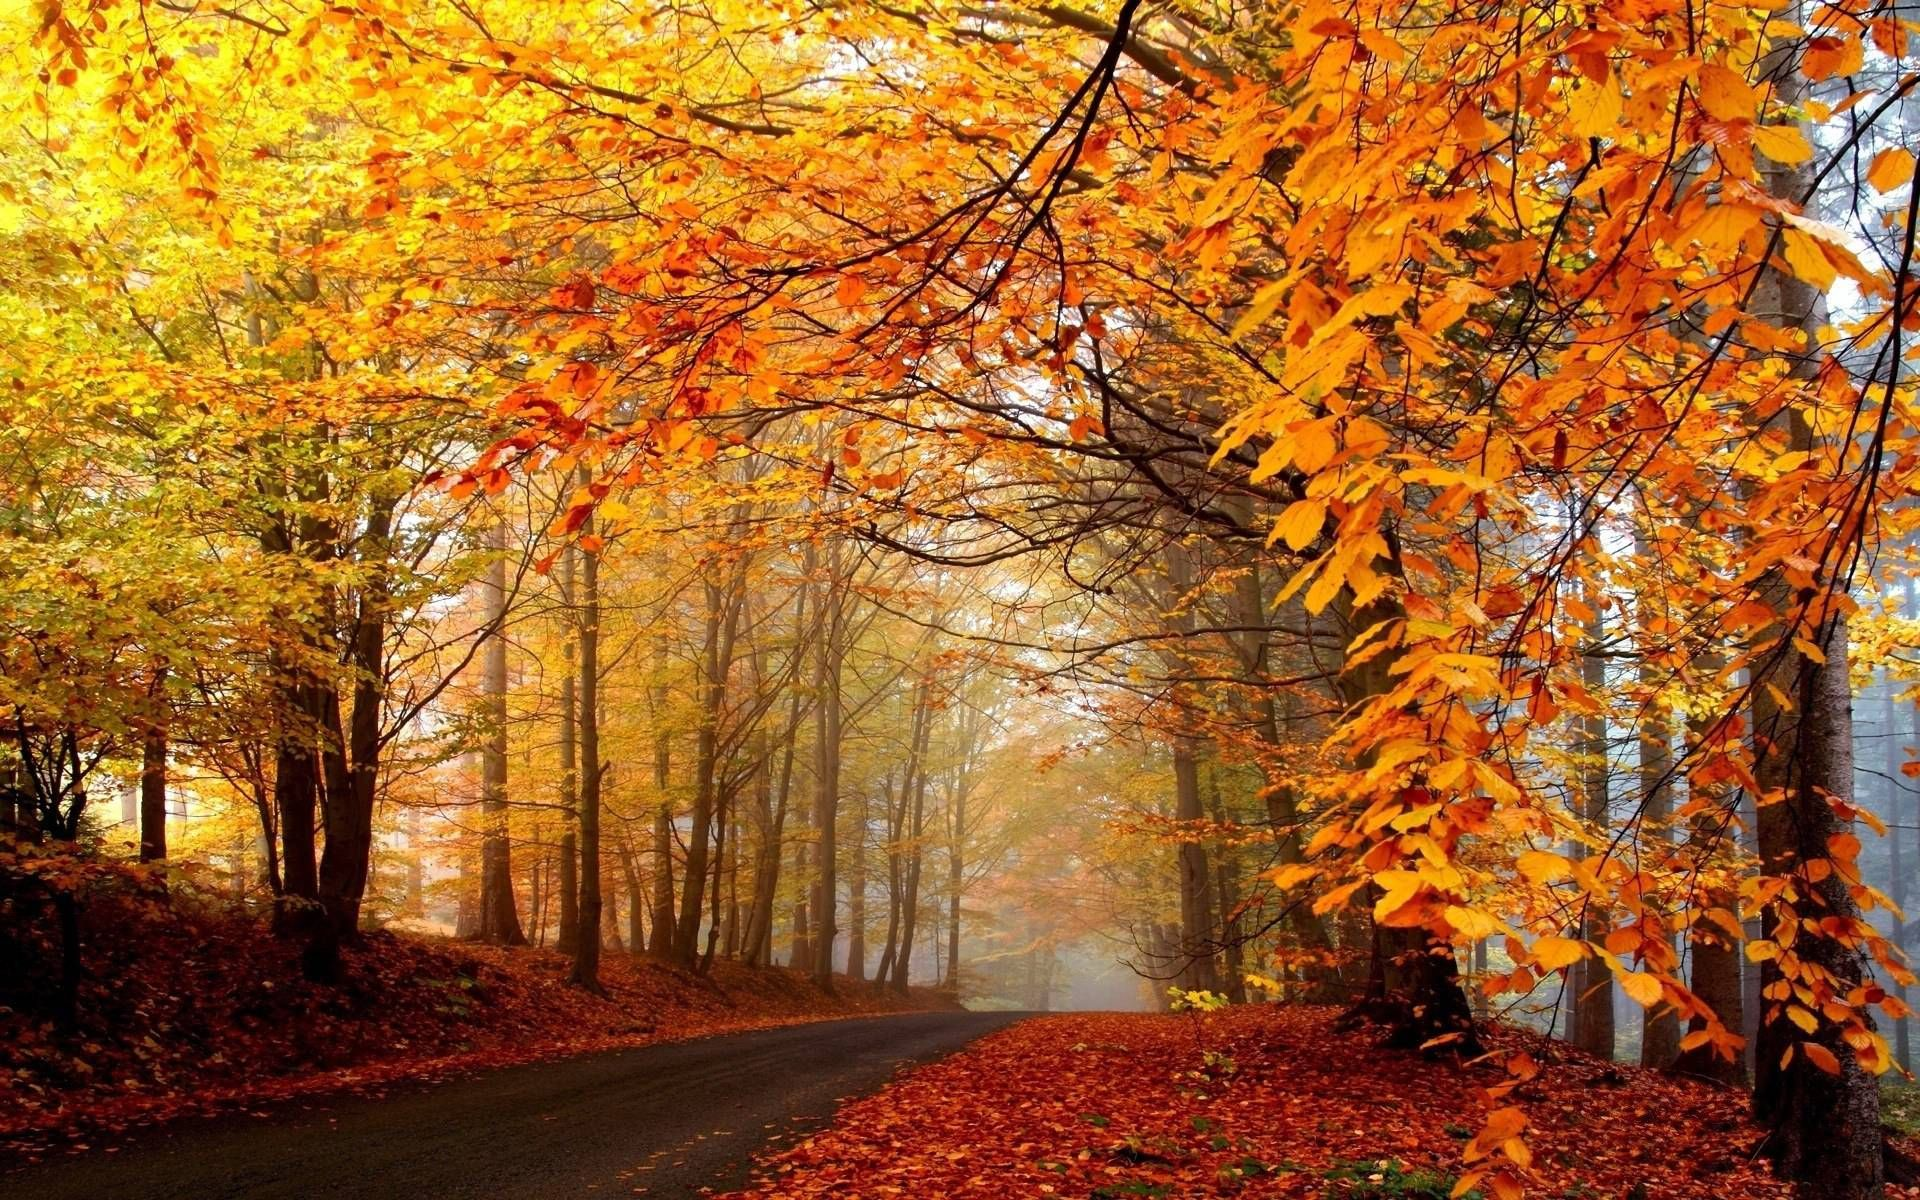 Wallpapers For Fall Trees Background Autumn Landscape Autumn Scenery Scenery Wallpaper